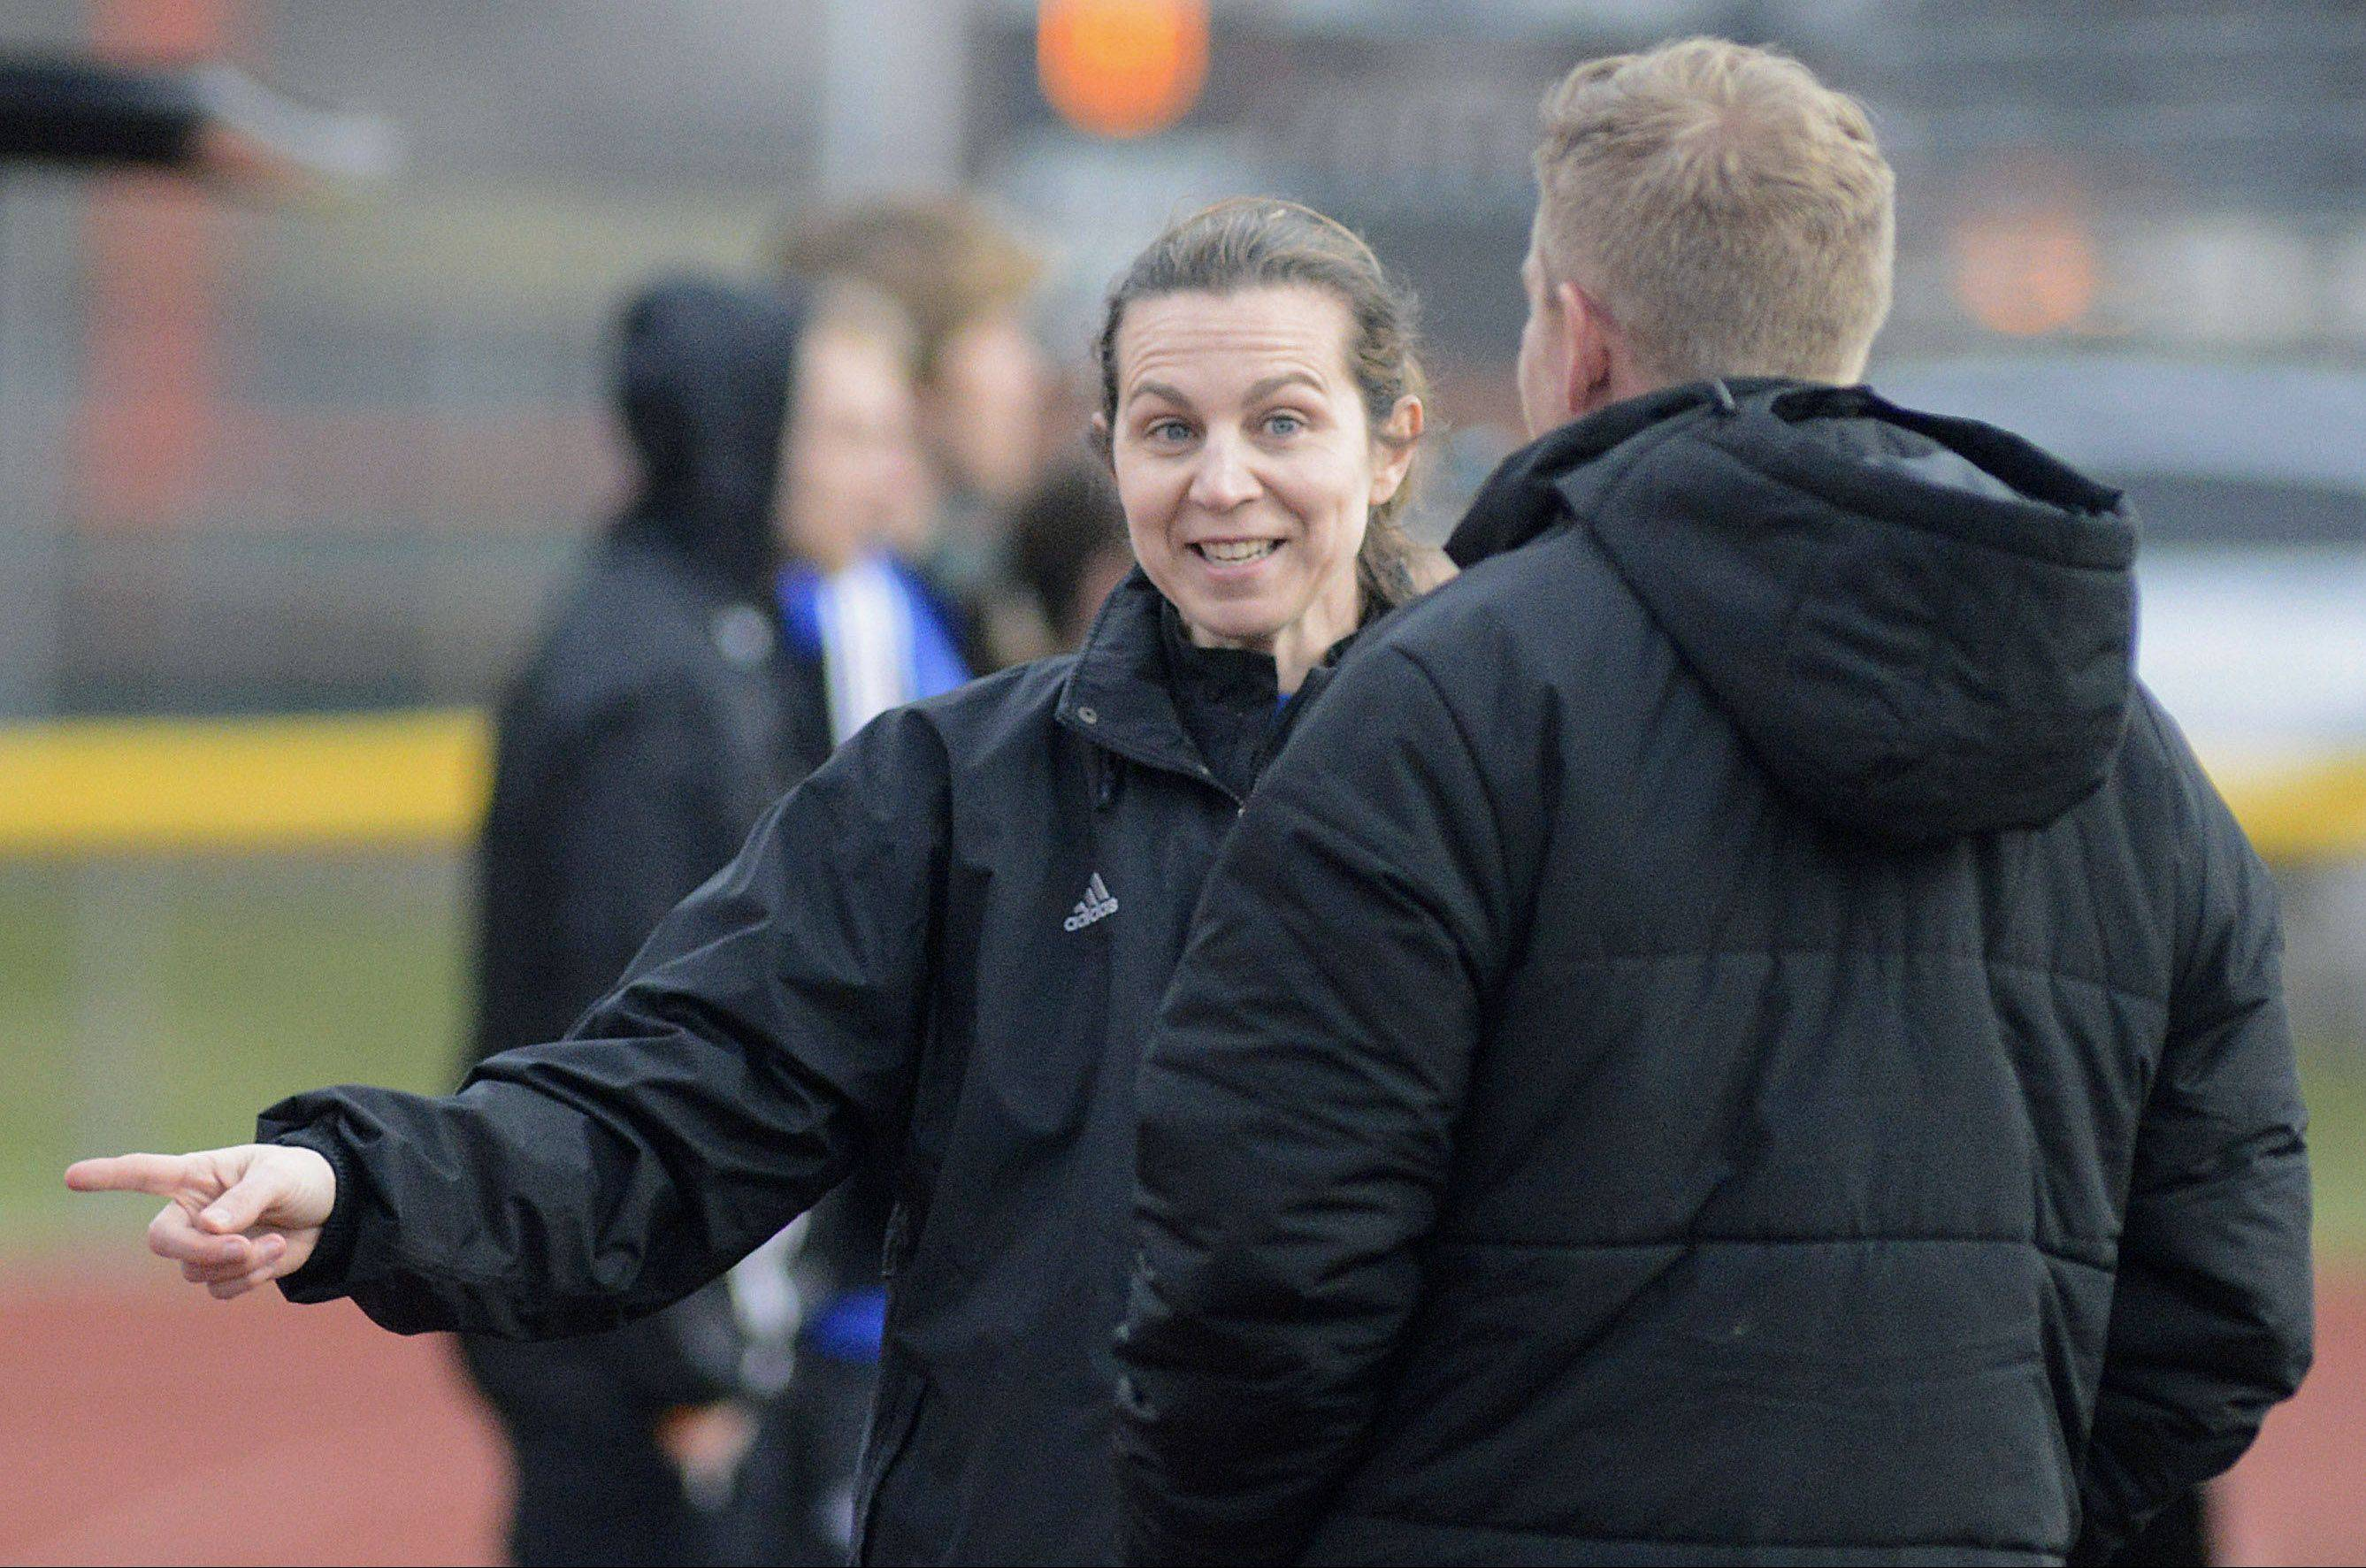 St. Charles North coach Ruth Vostal and St. Charles East coach Paul Jennison, pictured before the teams played in the regular season last month, could see their squads meet again for the Class 3A Hoffman Estates sectional championship May 24.